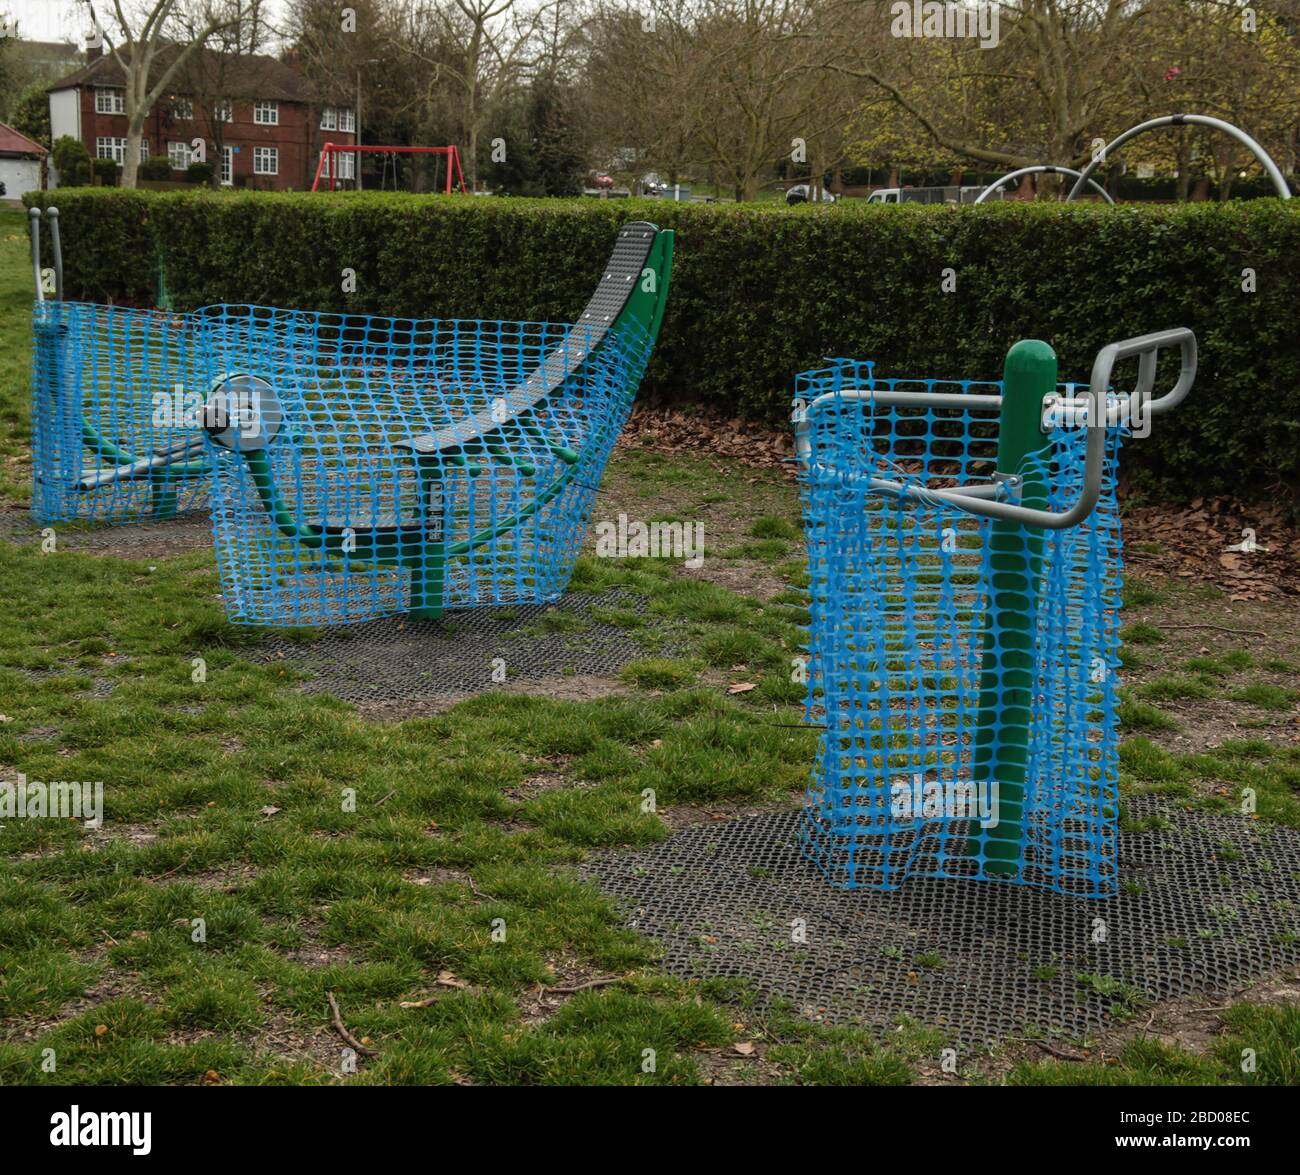 London UK Monday 6 April 2020 As the rules of social distancing have been. continuously ignored, Sutton Park was obliged to cover up all its exercise machines in the open ground,  as well as the children playground  .Paul Quezada-Neiman/Alamy Live News Stock Photo